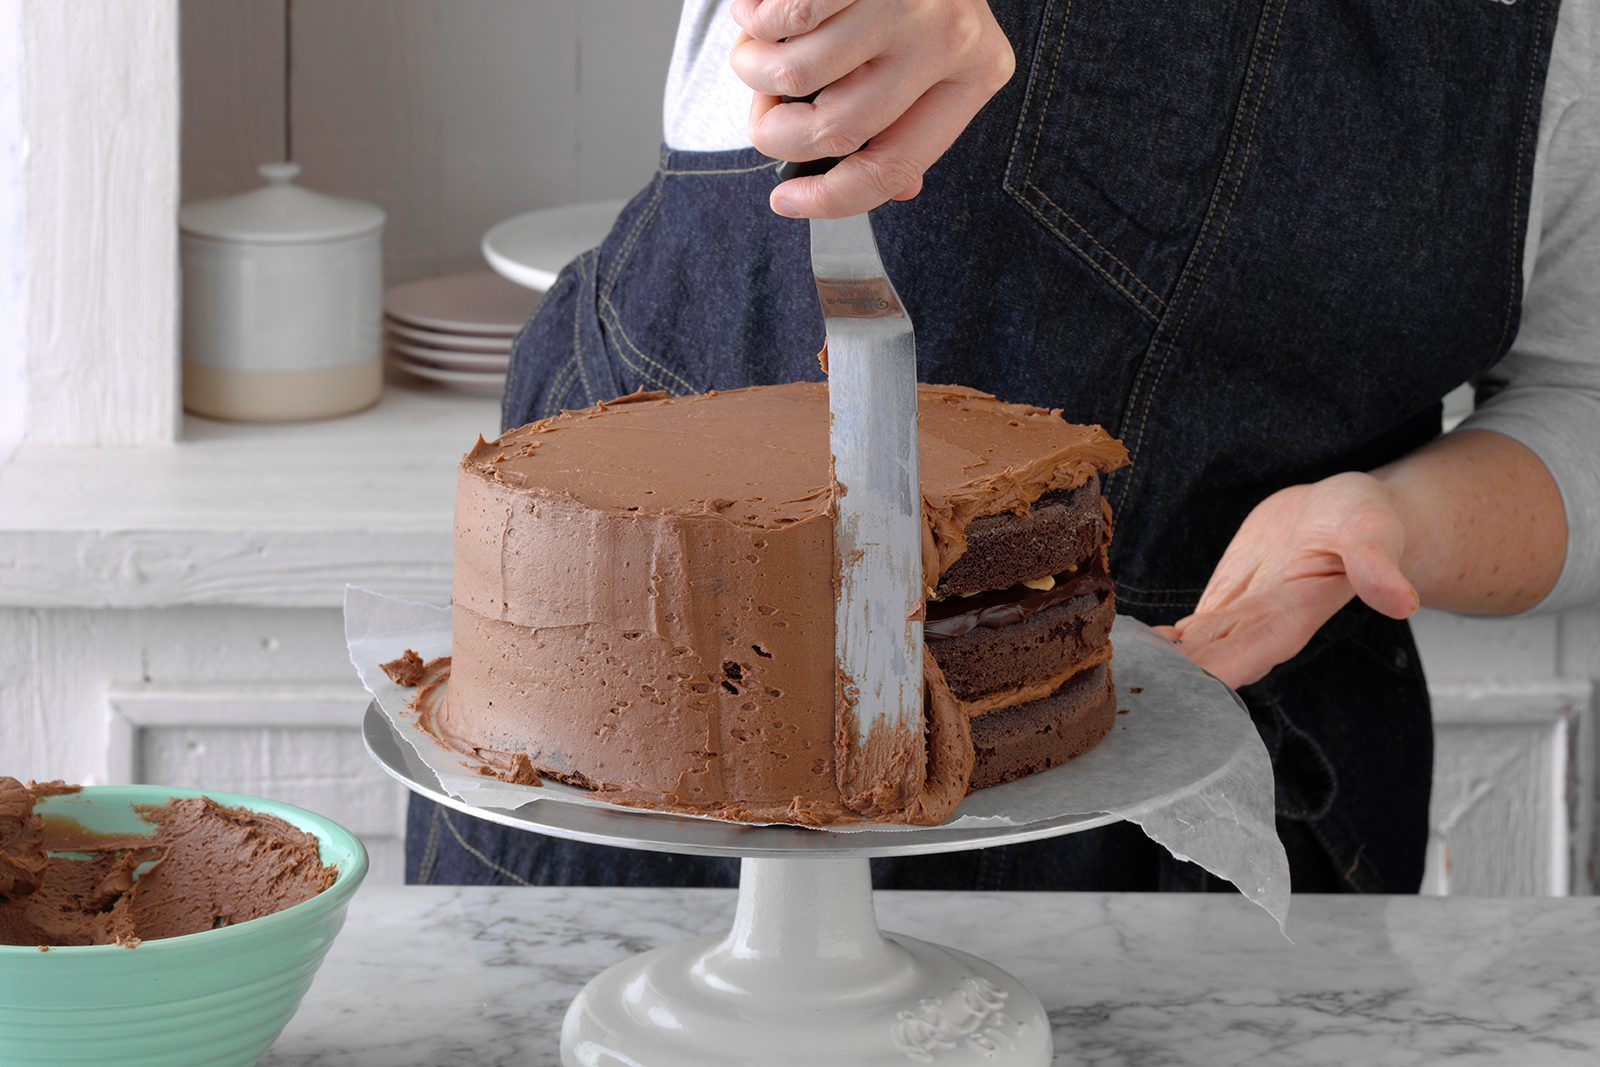 Frosting a chocolate cake